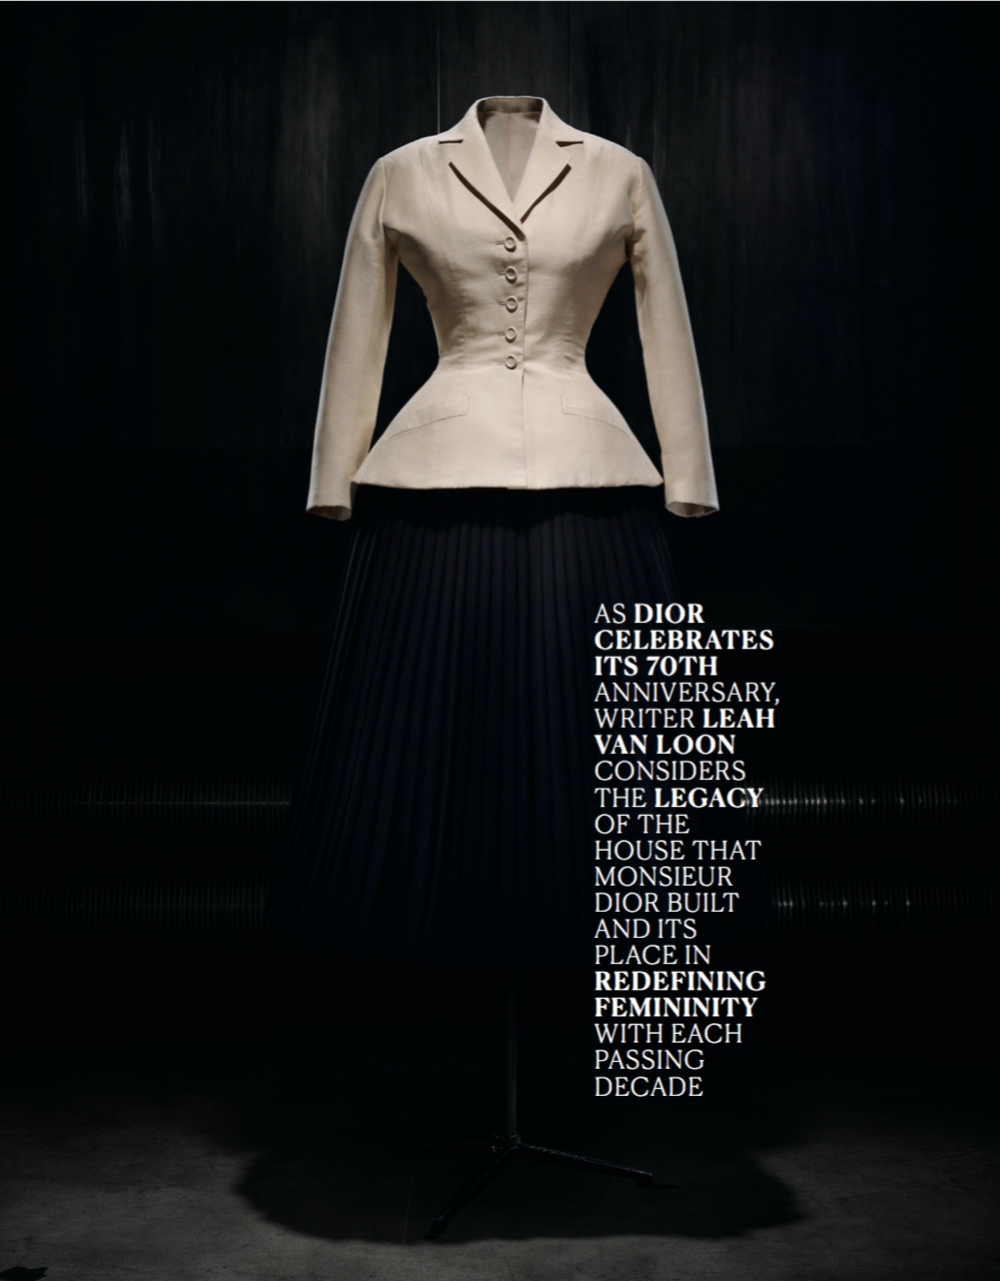 Introduction Dior by Leah Van Loon S magazine